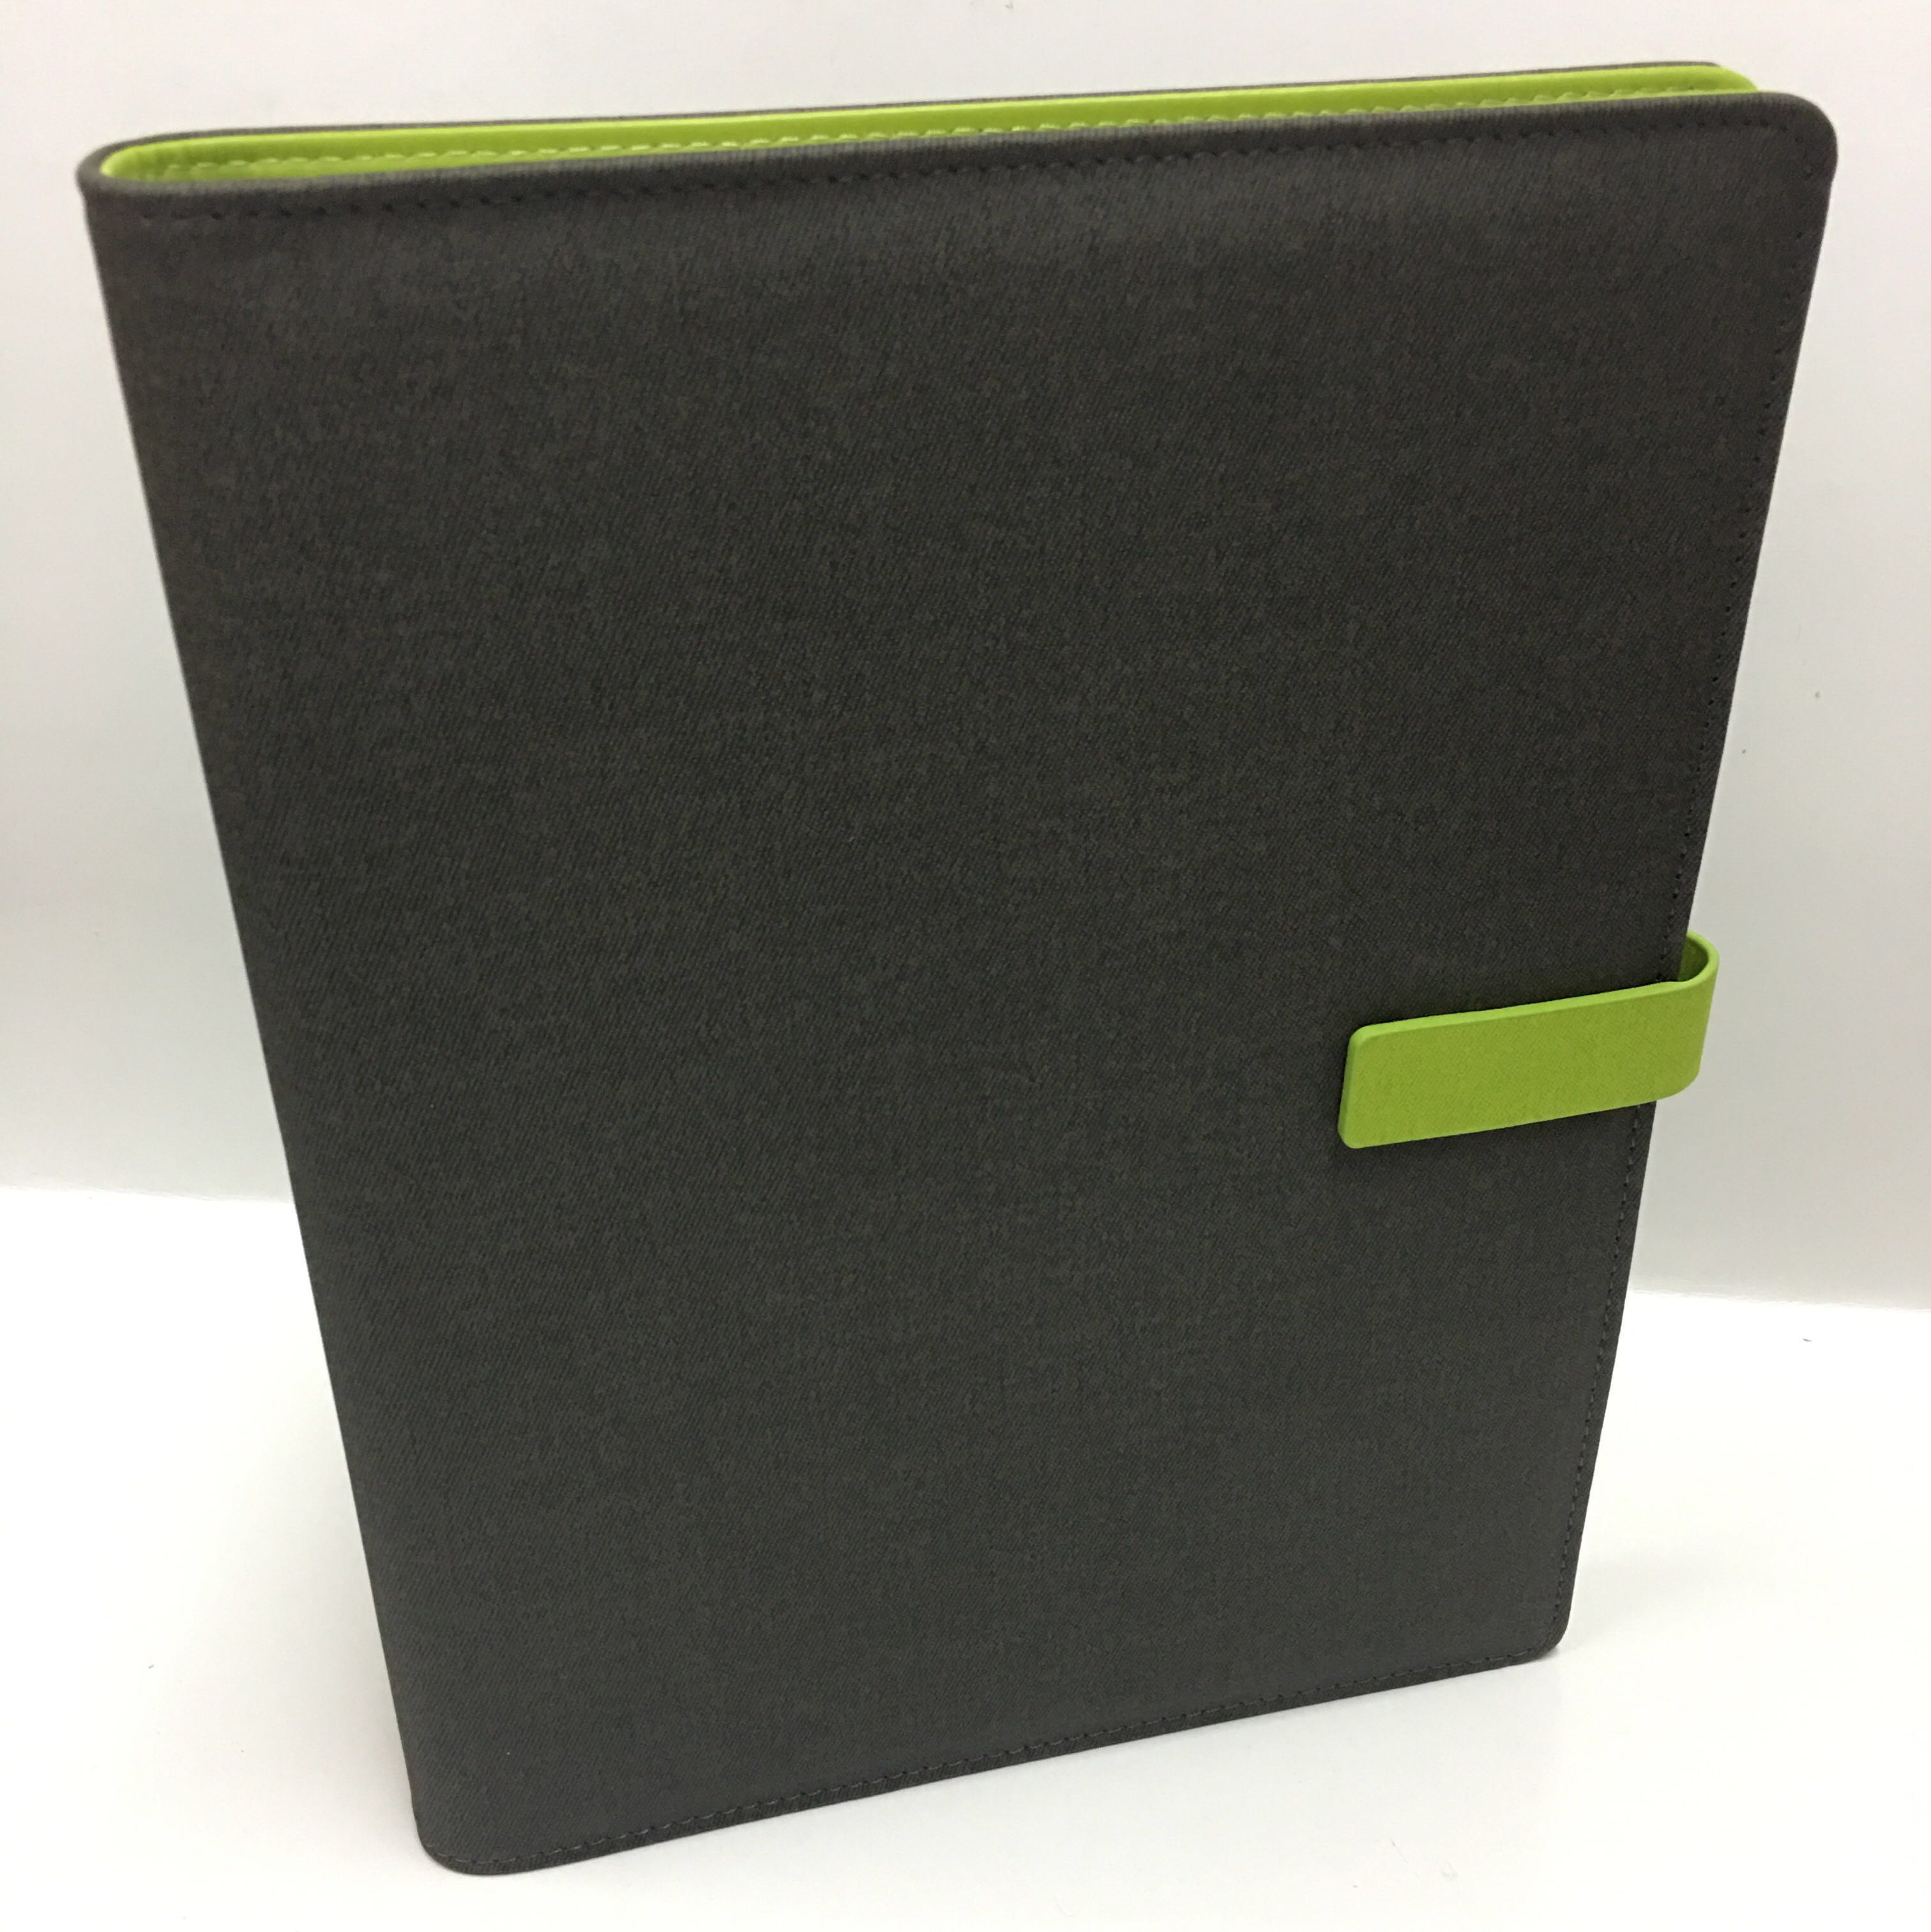 BIG-B5 Refillable NoteBooks/Green(60 sheets of Notes) 21.5cm x 27cm (Height)-S$24.80 🚗{Including a Free delivery}